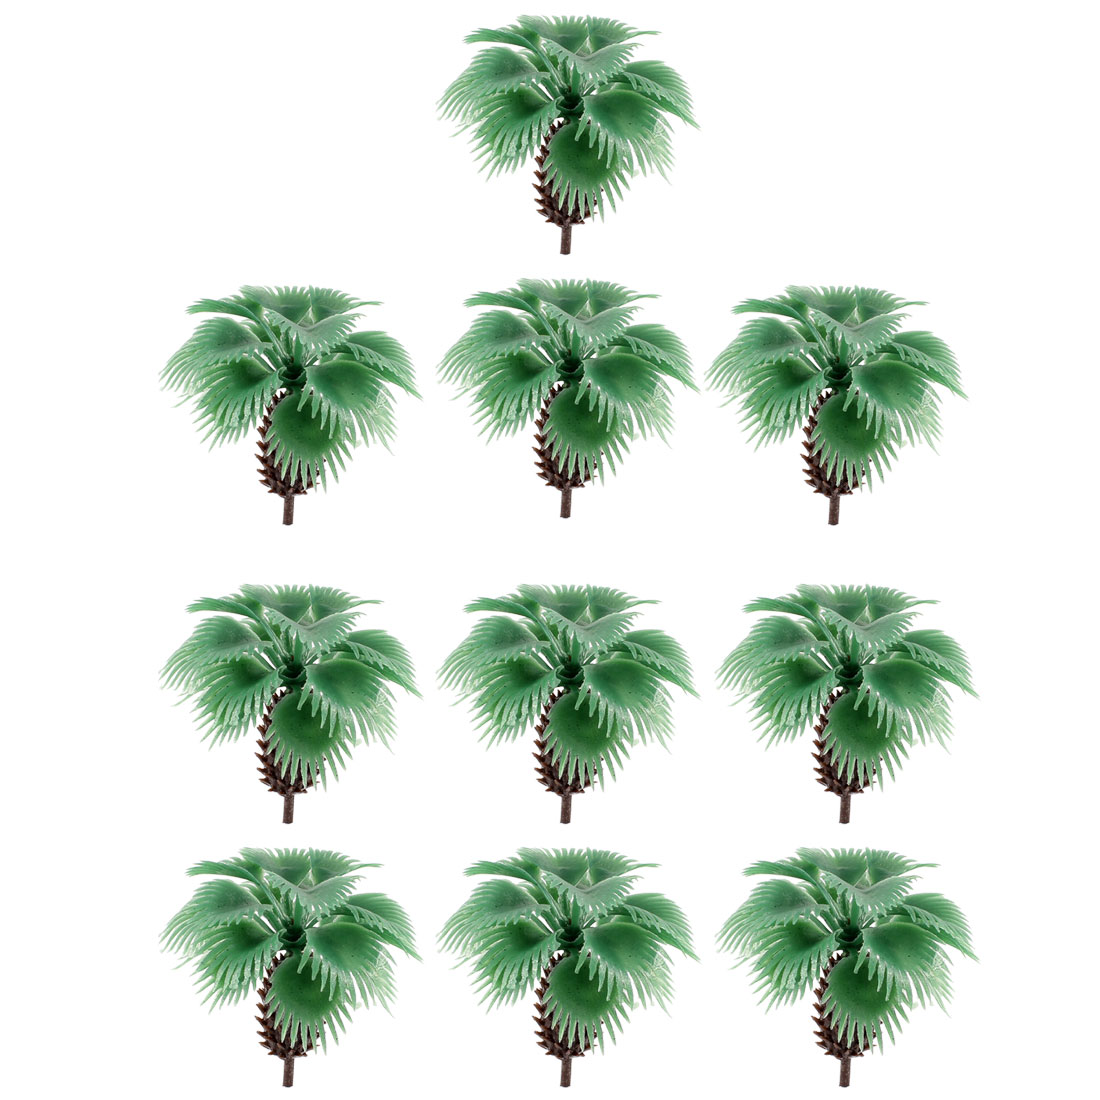 10 Pcs Green Palm Model Trees Layout Scene 1:100